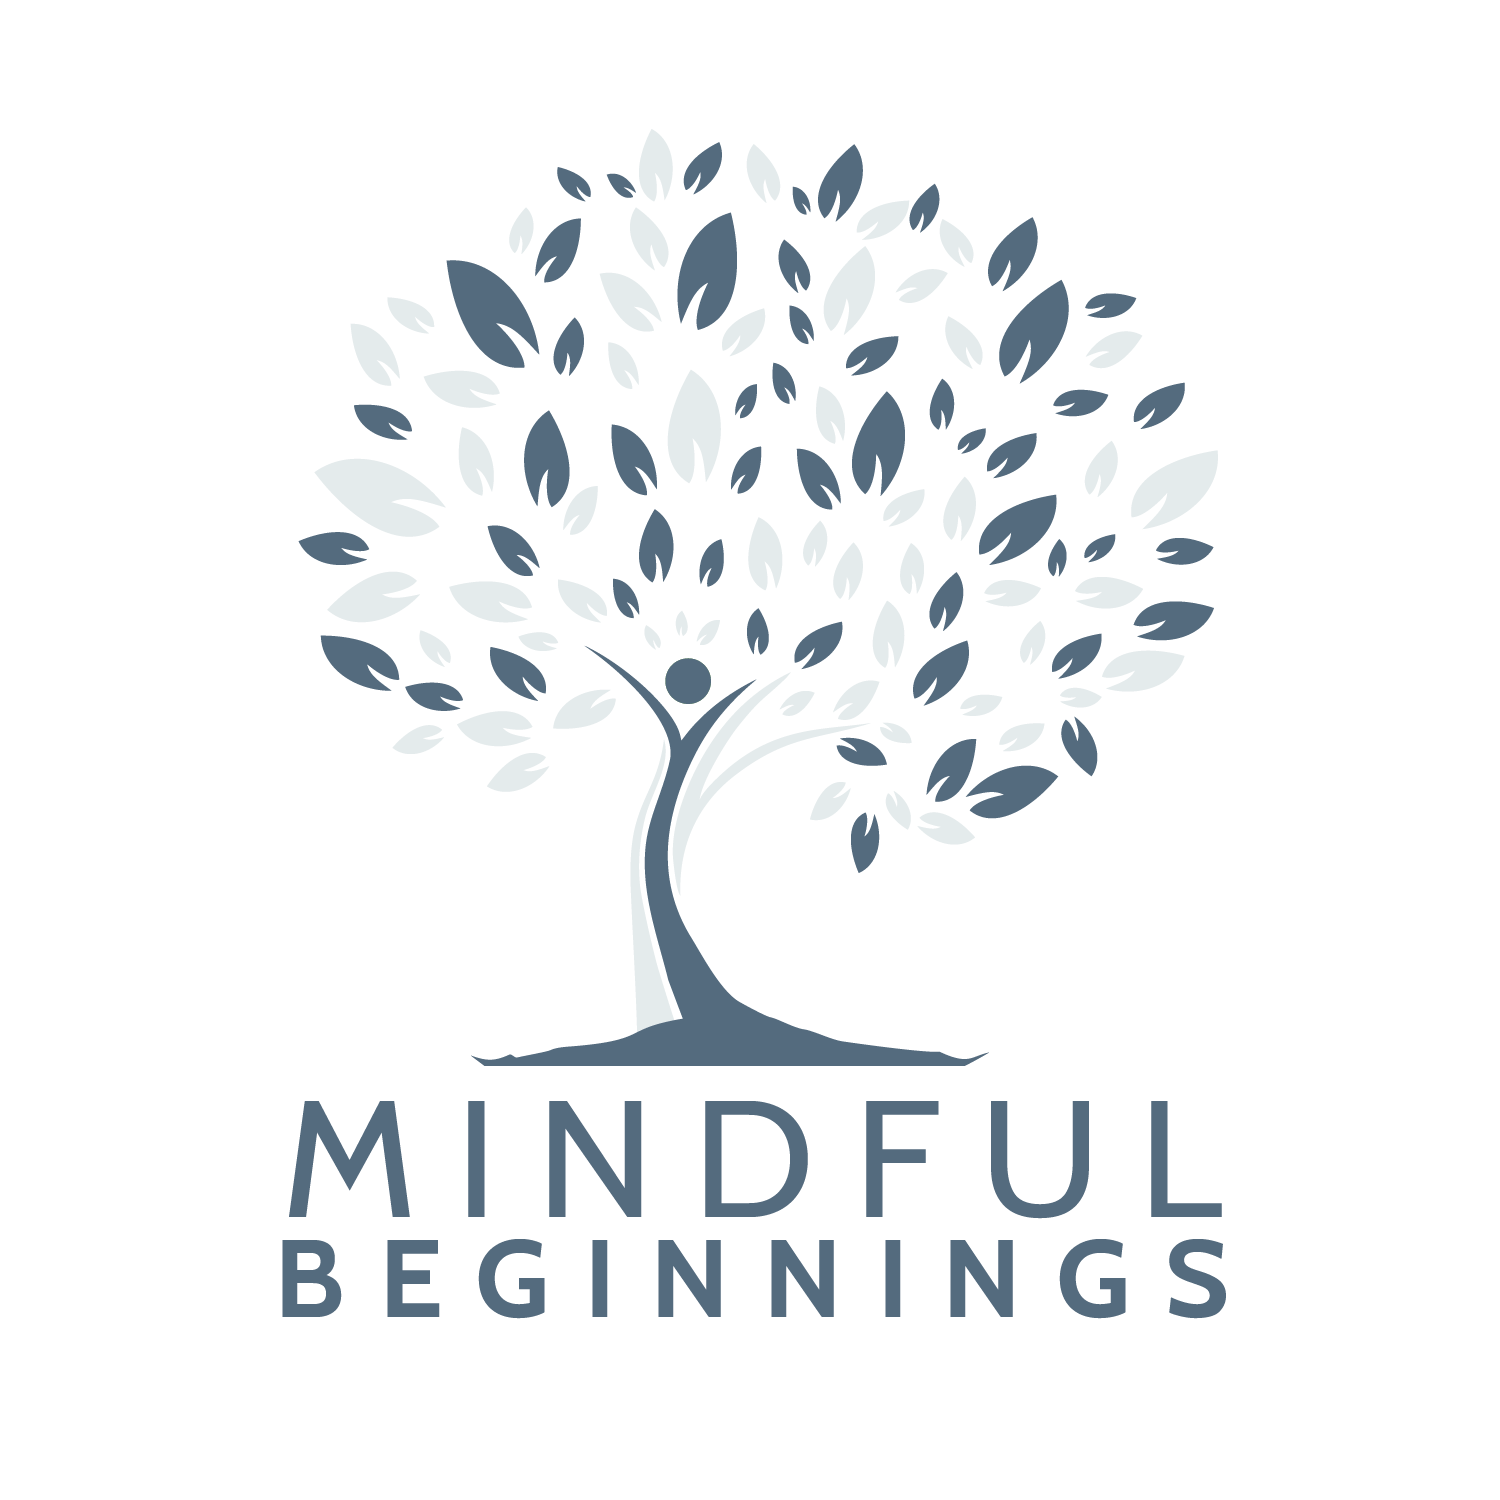 Mindful Beginnings